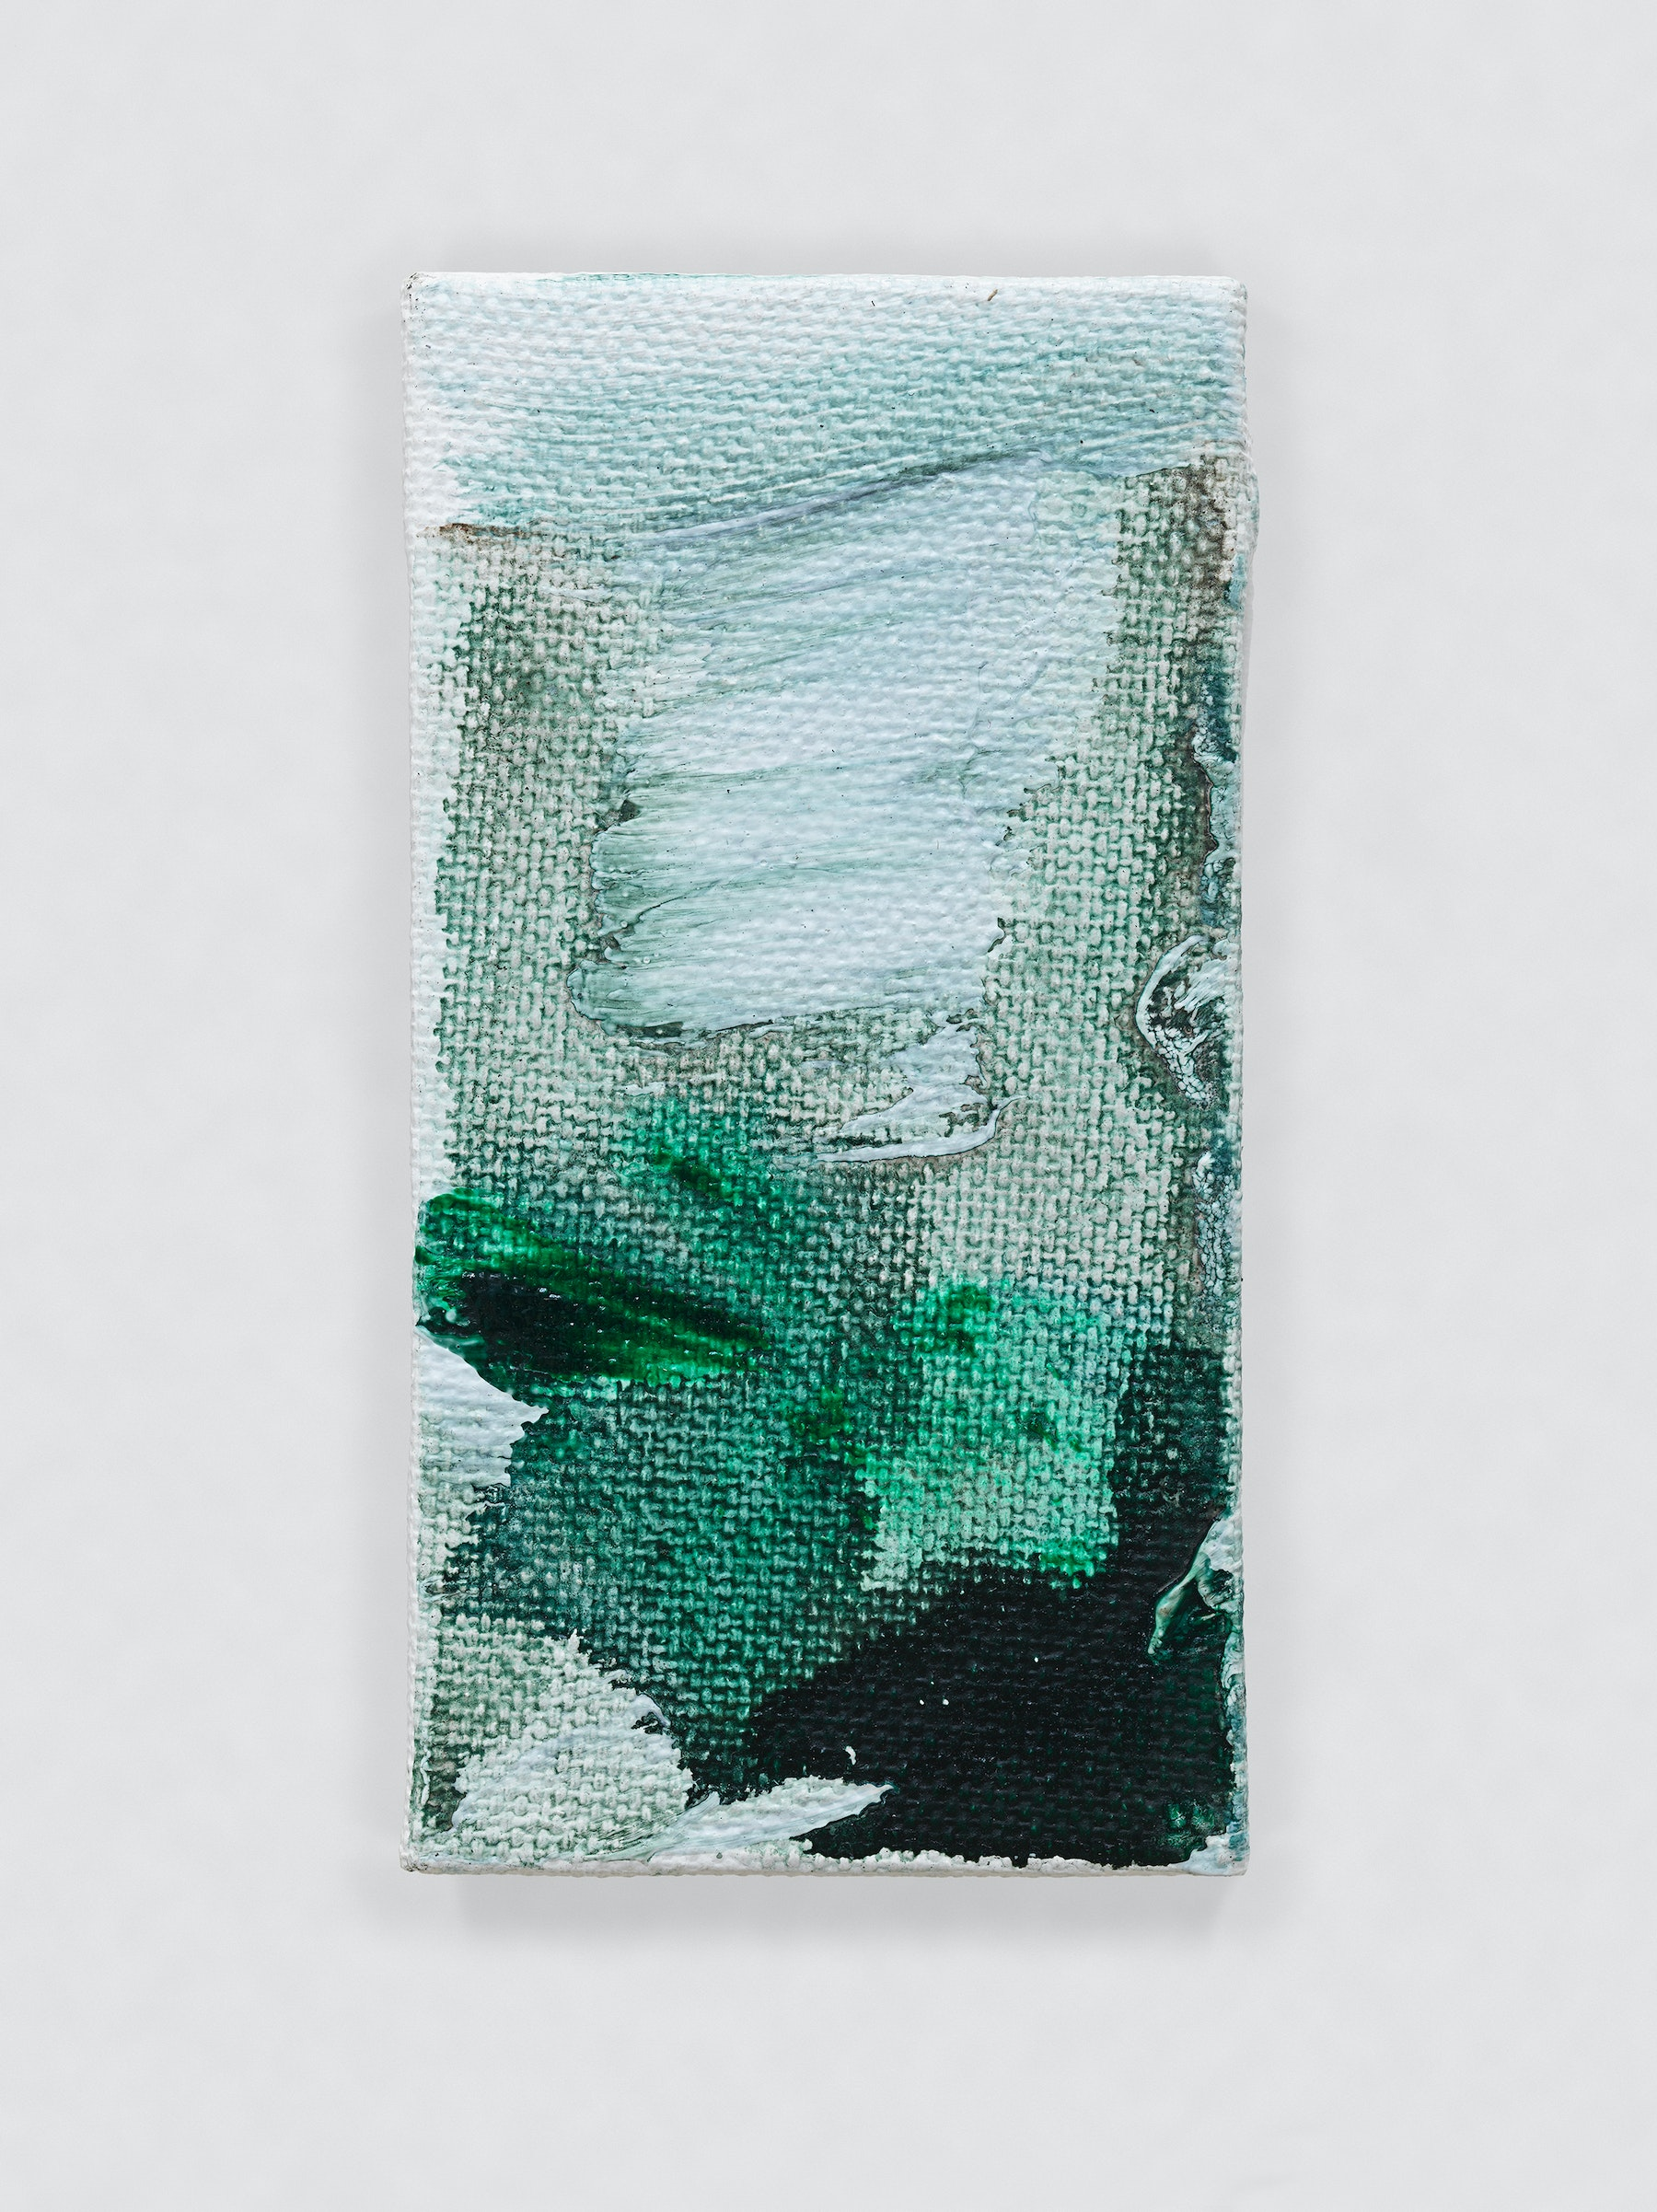 "Louise Fishman ""UNTITLED,"" 2014 Oil on canvas 4.06 x 2.09"" [HxW] (10.31 x 5.31 cm) Inventory #FIS148 Courtesy of the artist and Vielmetter Los Angeles Photo credit: Genevieve Hanson Signed and dated on verso"